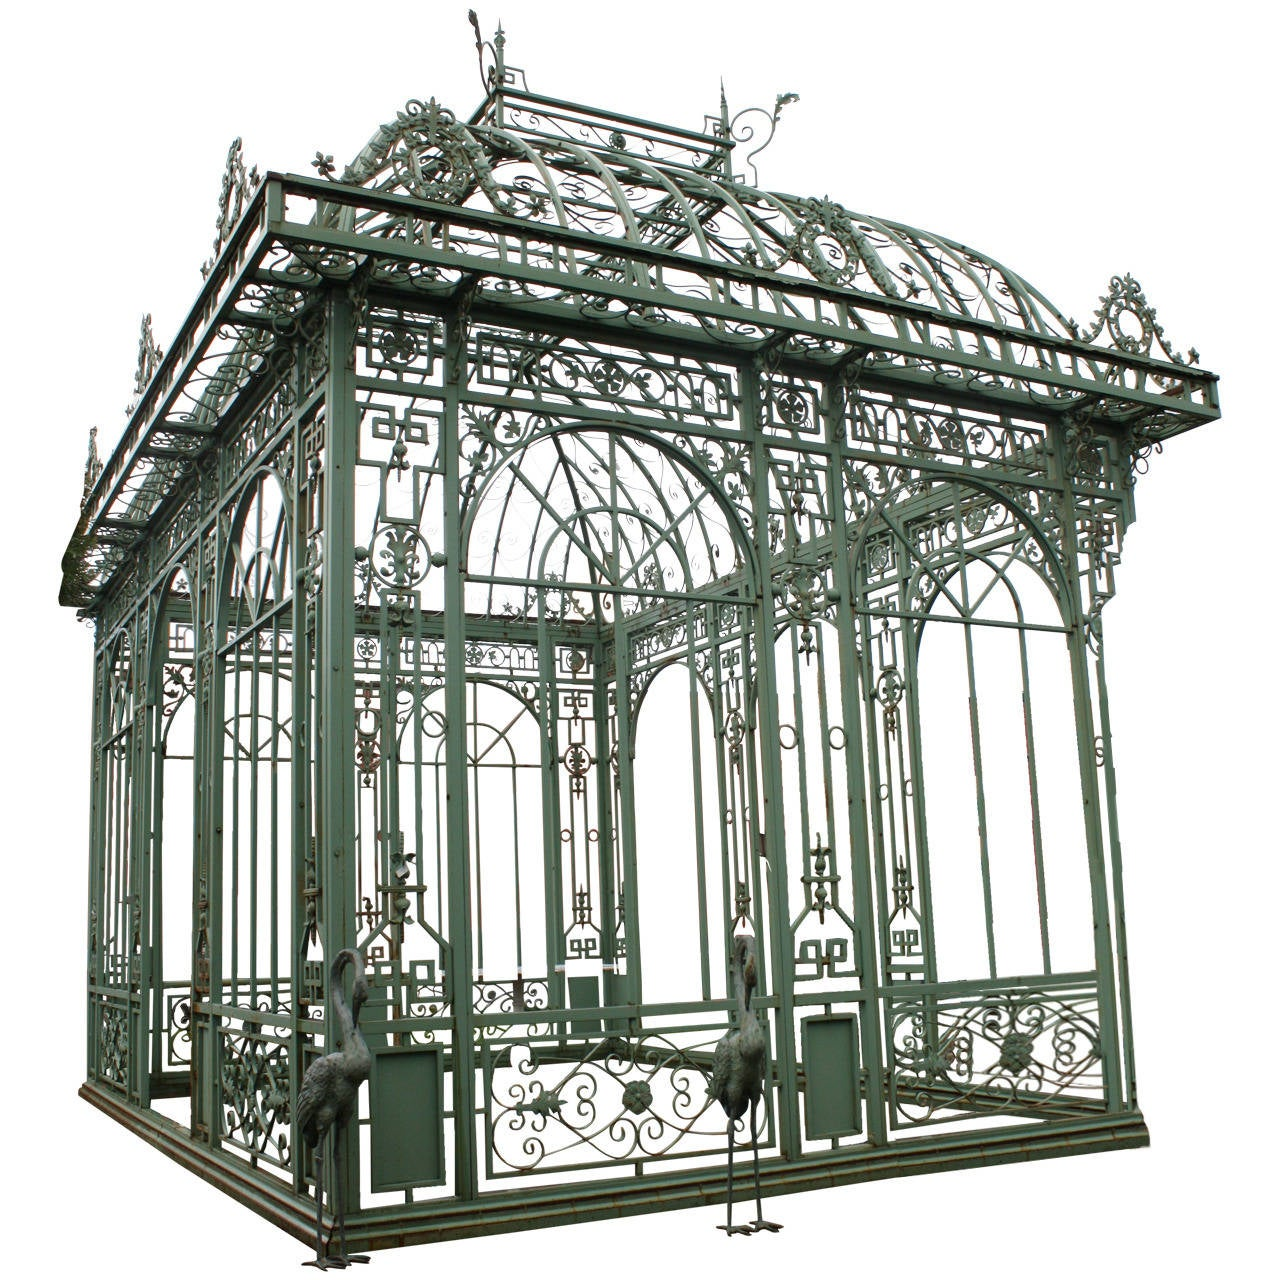 Architectural Building Elements : Exceptional cast iron pavillon at stdibs